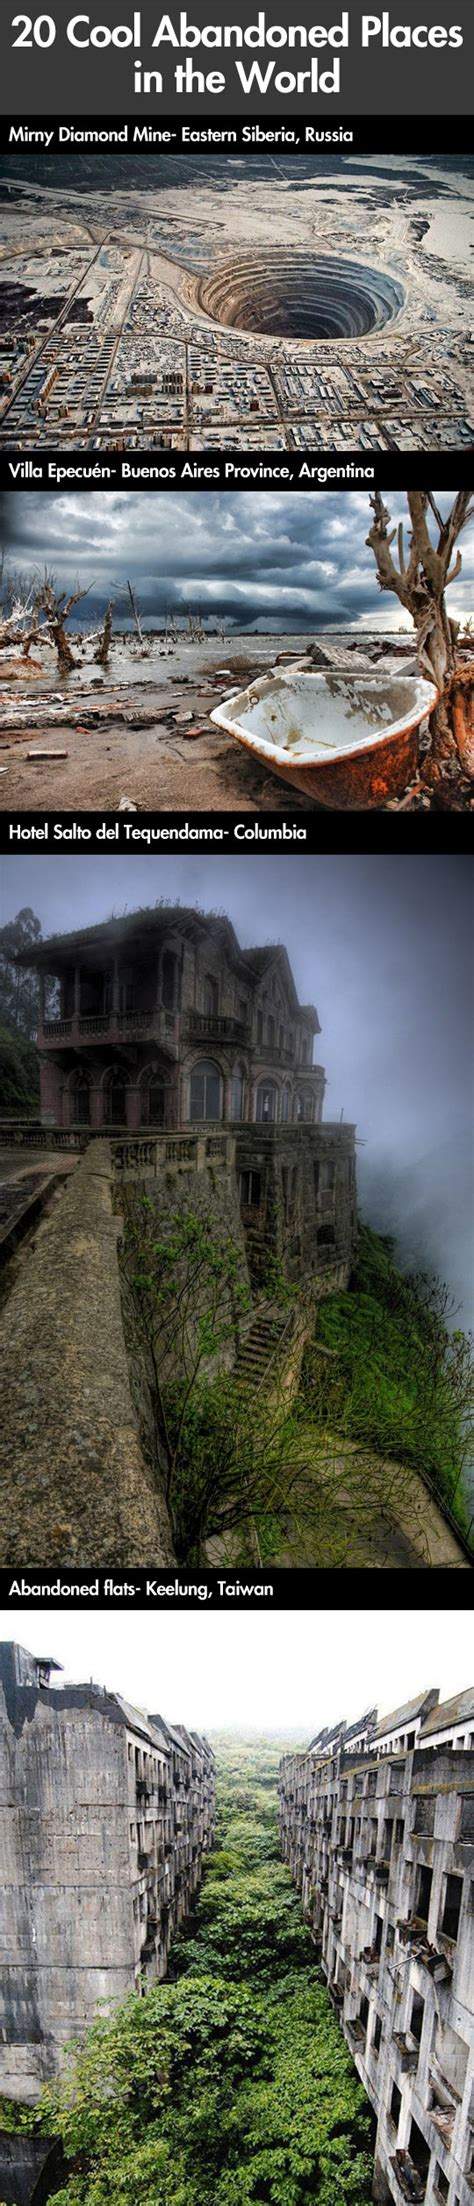 cool abandoned places amazing abandoned places in the world the meta picture